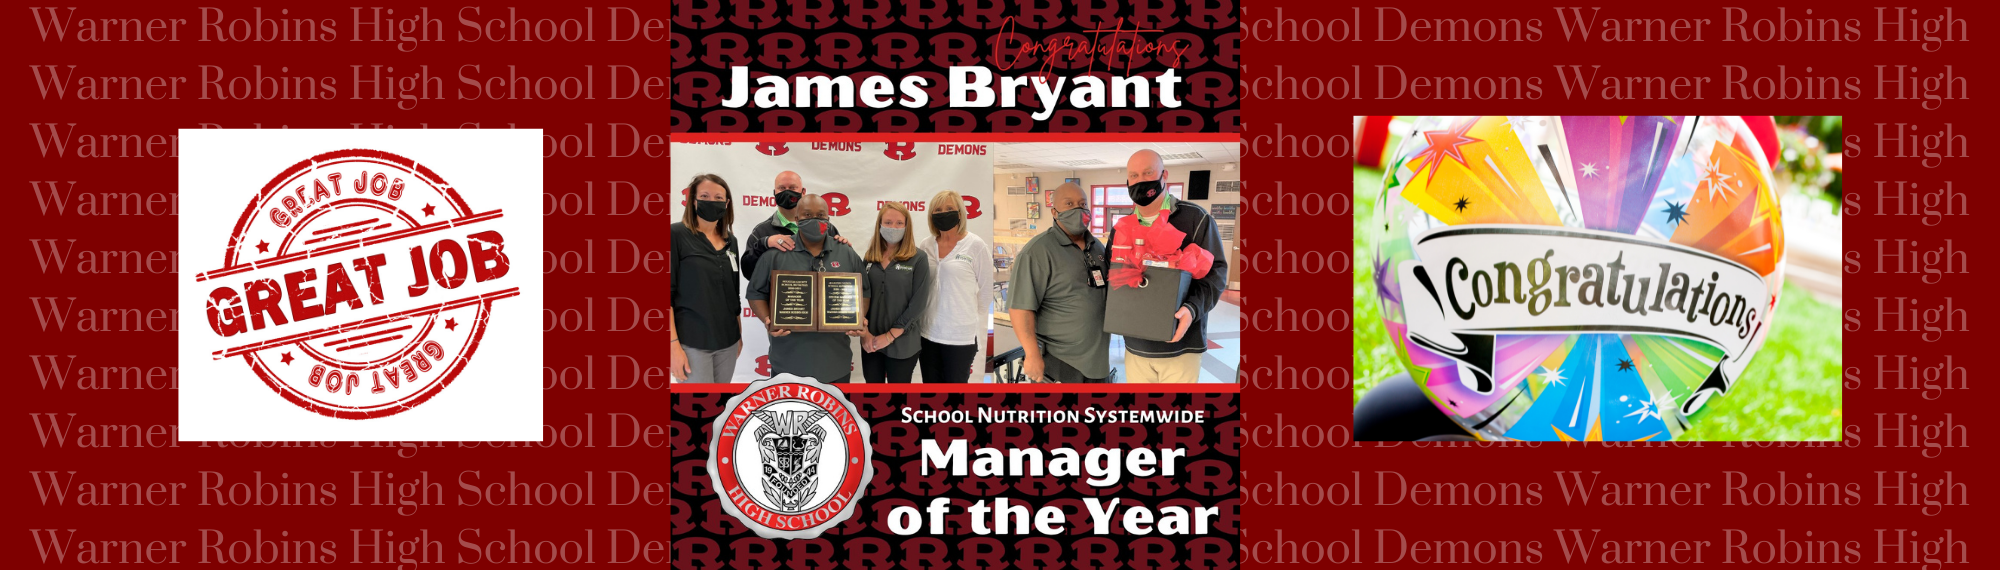 James Bryant--School Nutrition Manager of the Year